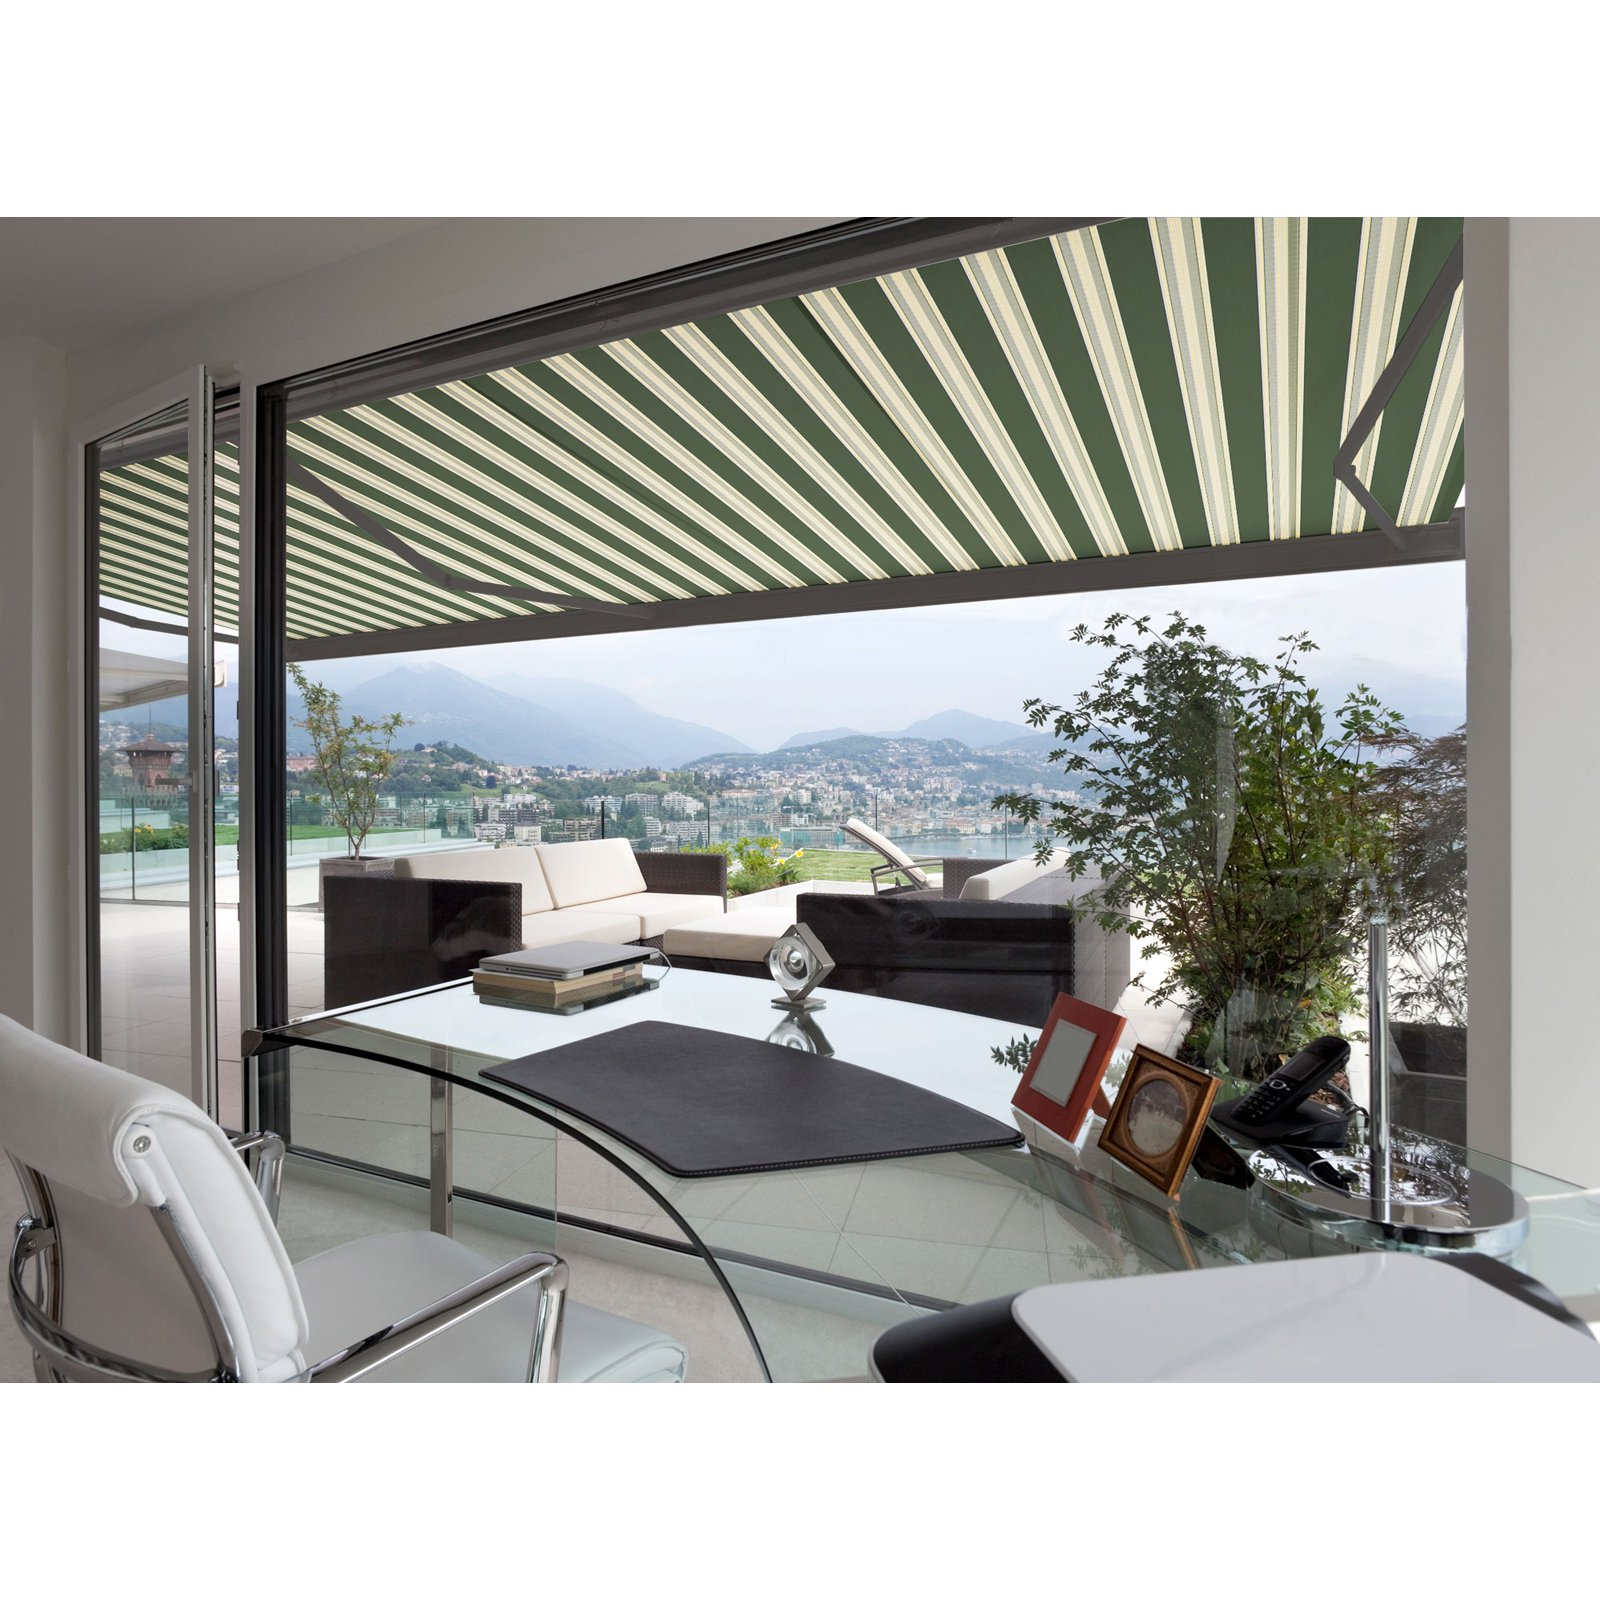 Image of 10FT C SERIES SEMI-CASSETTE MANUAL RETRACTABLE AWNING 8FT PROJ